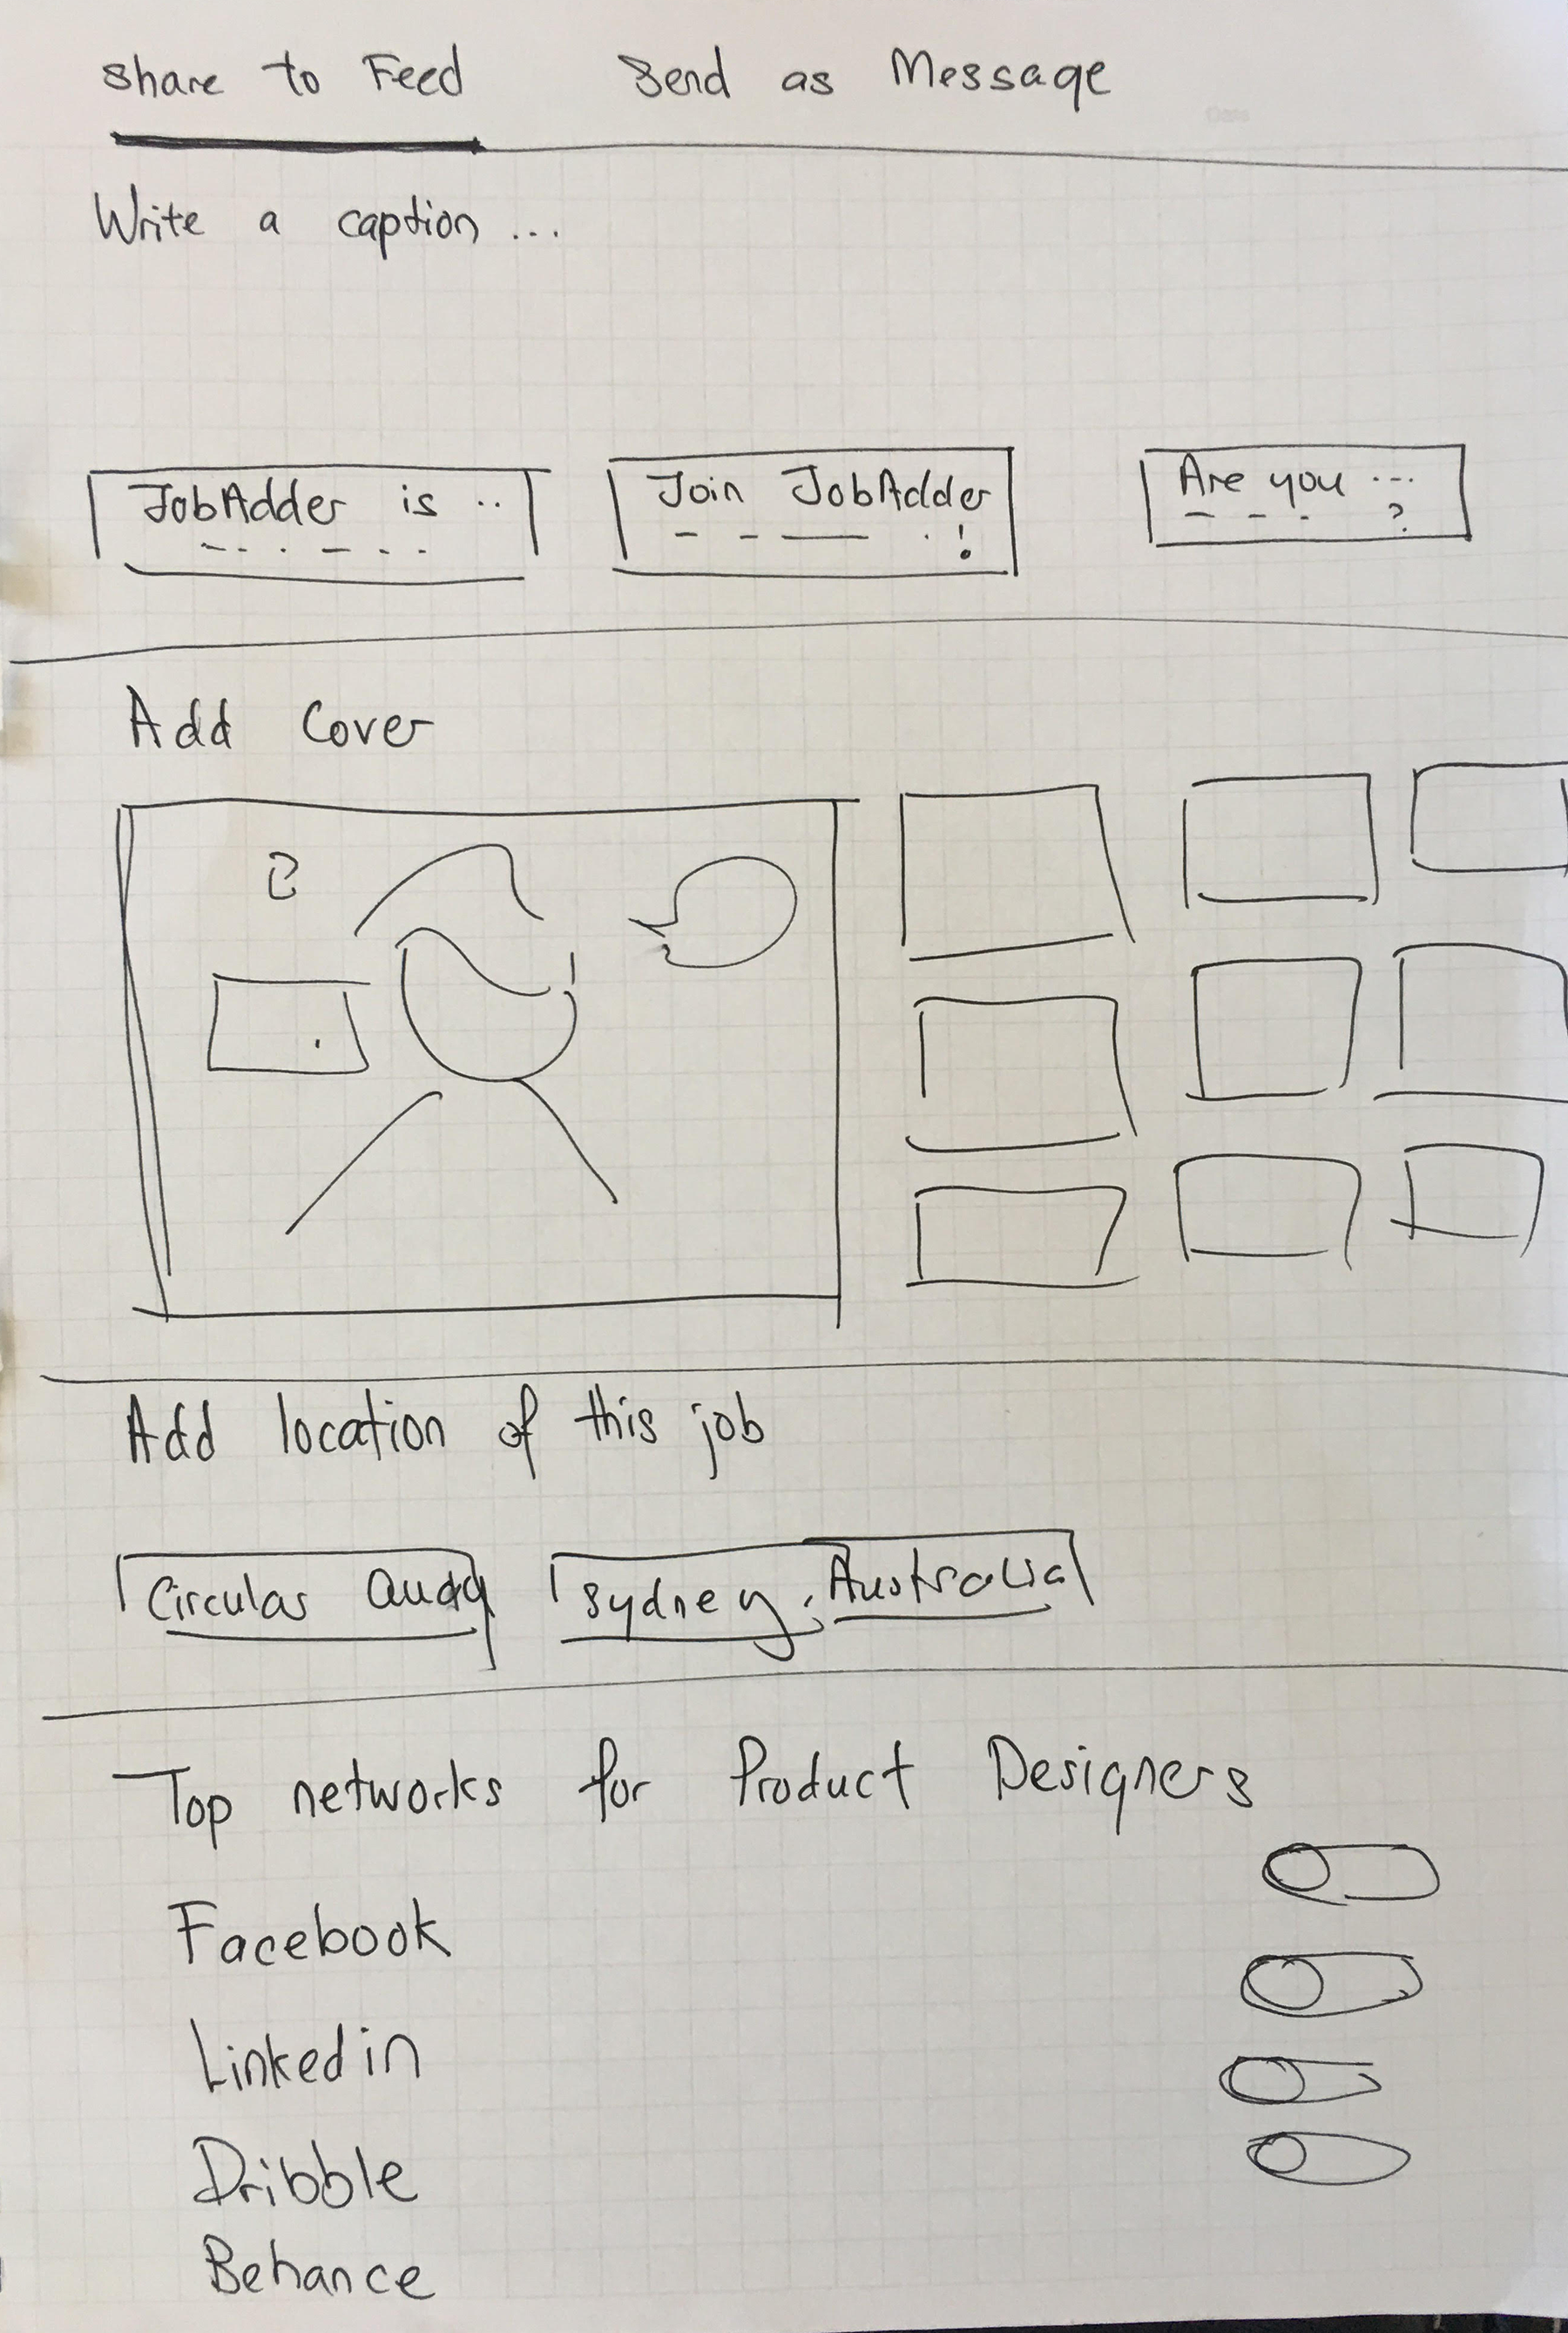 Low-Fidelity Sketches - Based on the business/user assumptions and IA, I sketched out some quick ideas, focusing more on macro design concepts.As I worked through the hi-fidelity designs, I decided to add in an introductory screen to inform first-time users on the Ai job ad sharing post capability.